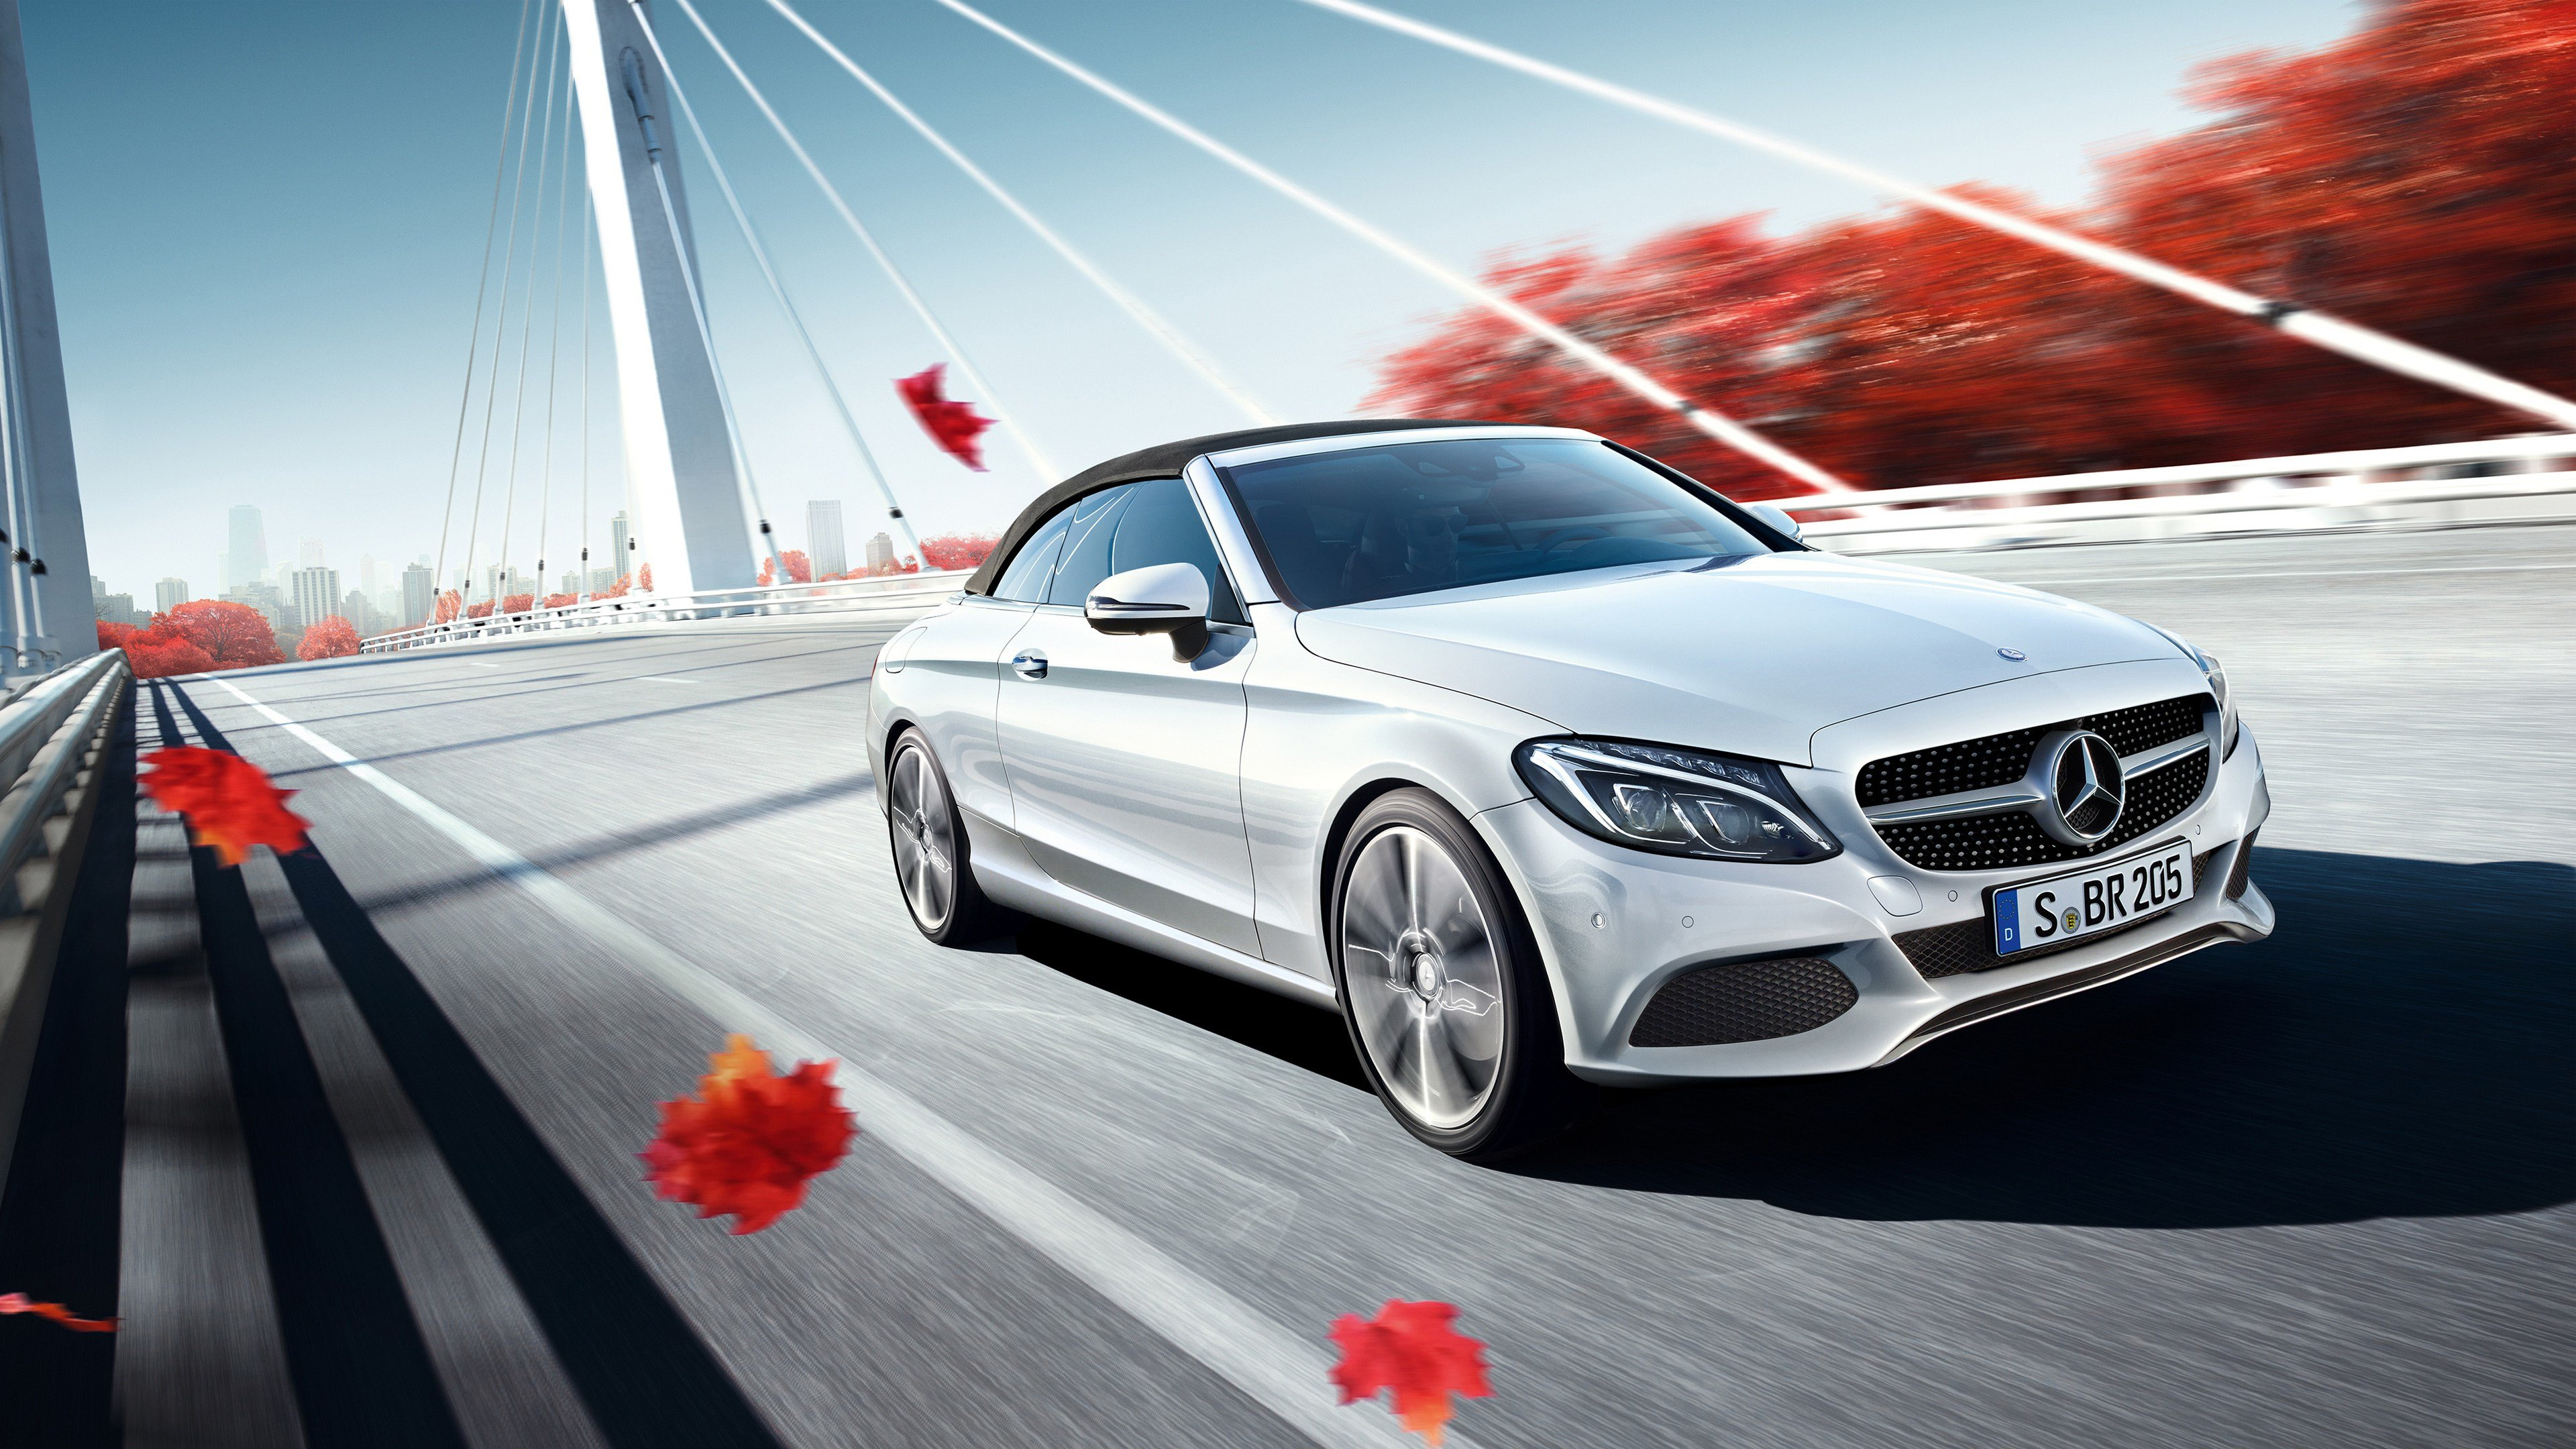 Latest 2017 Mercedes Benz C Class Cabriolet Wallpaper Hd Car Free Download